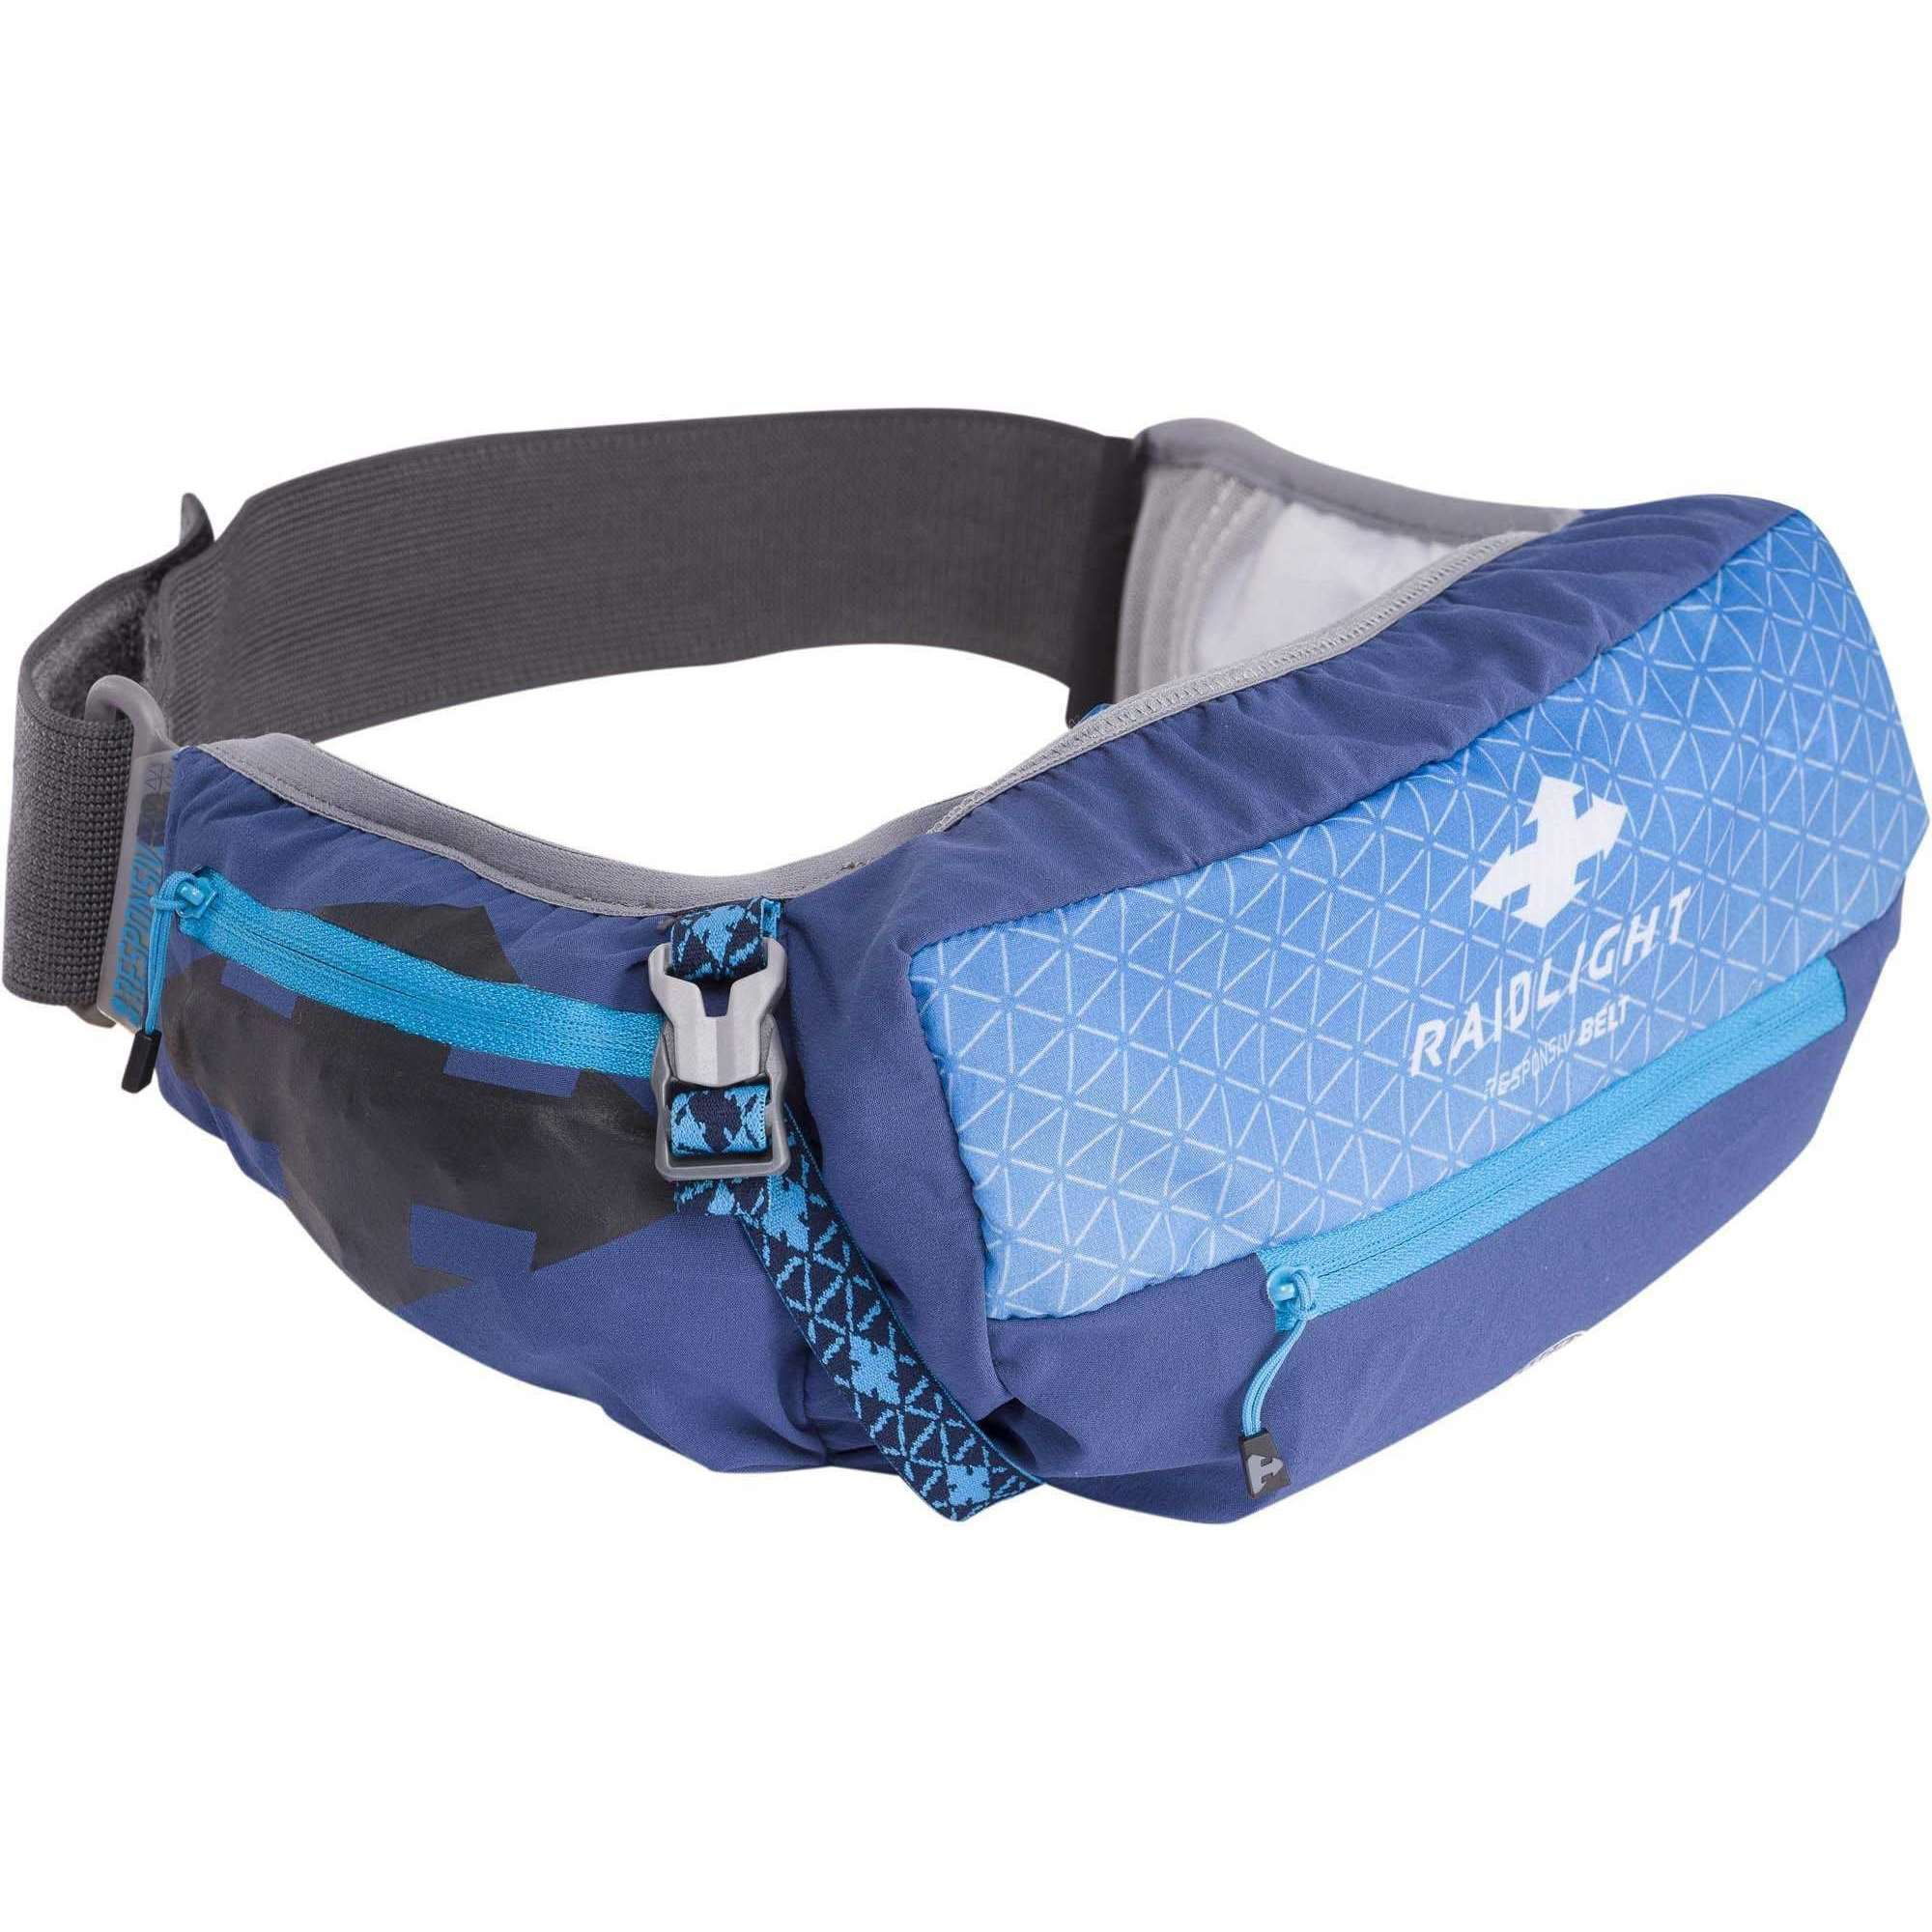 Responsiv Belt Hydration Belt- RaidLight